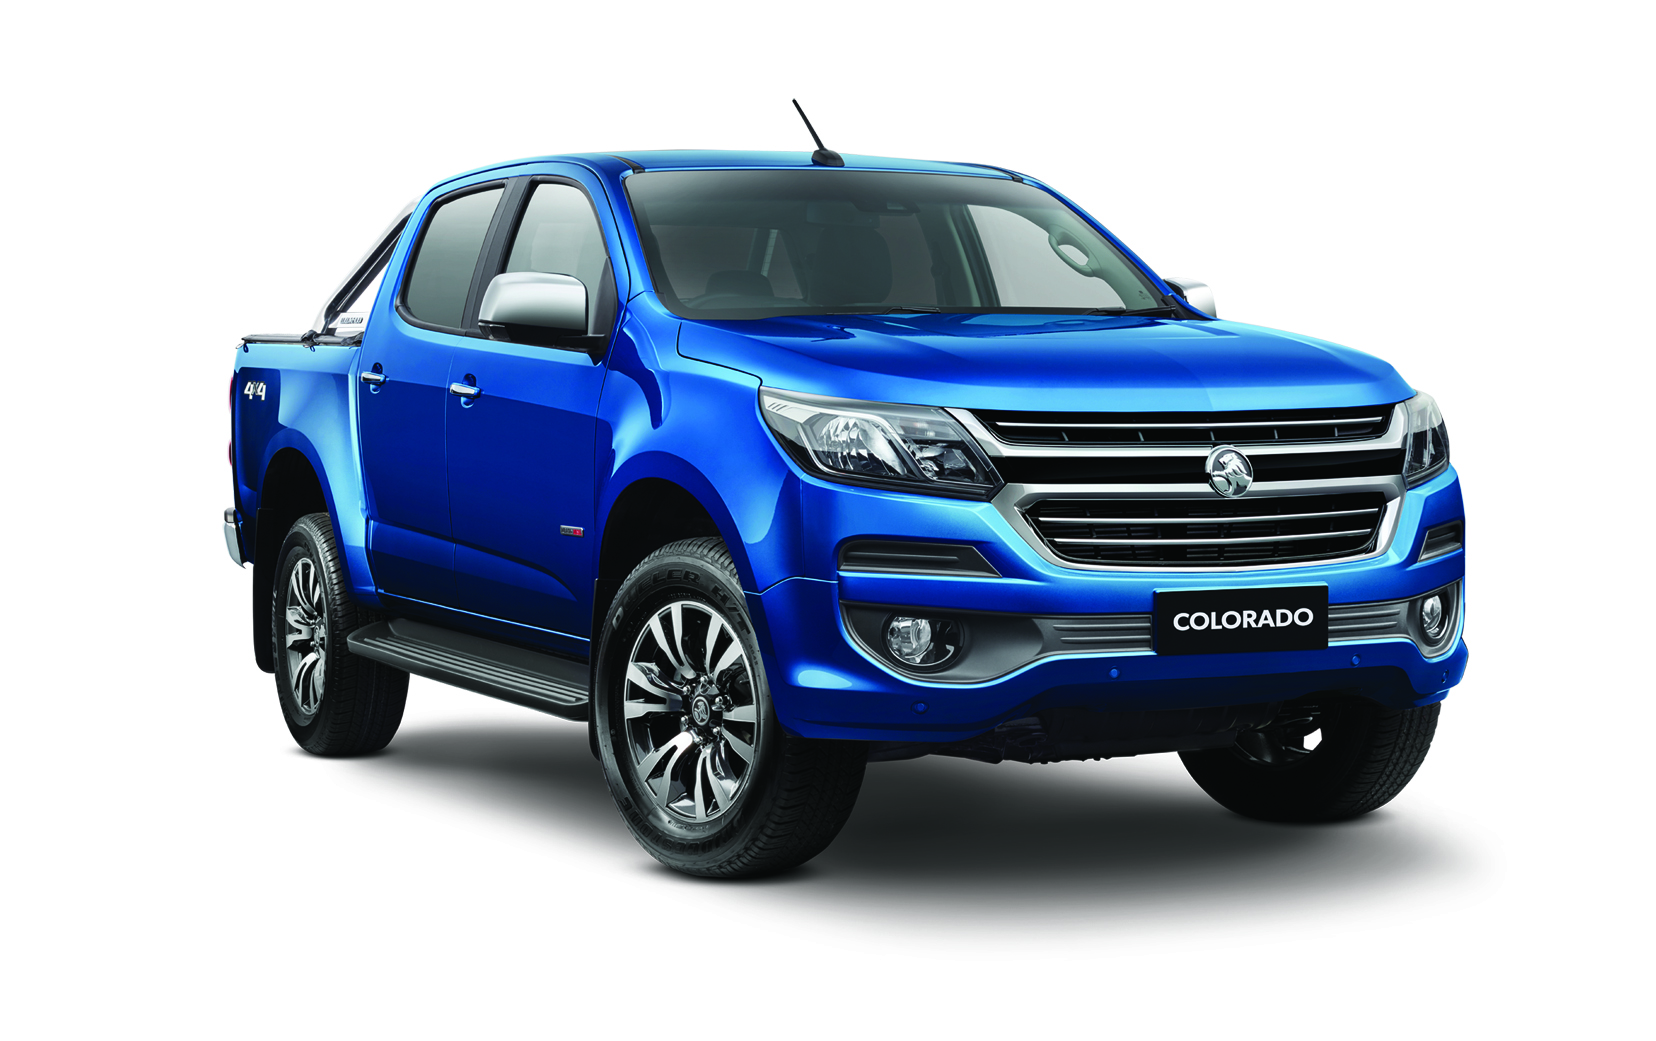 Holden Colorado LTZ 4WD